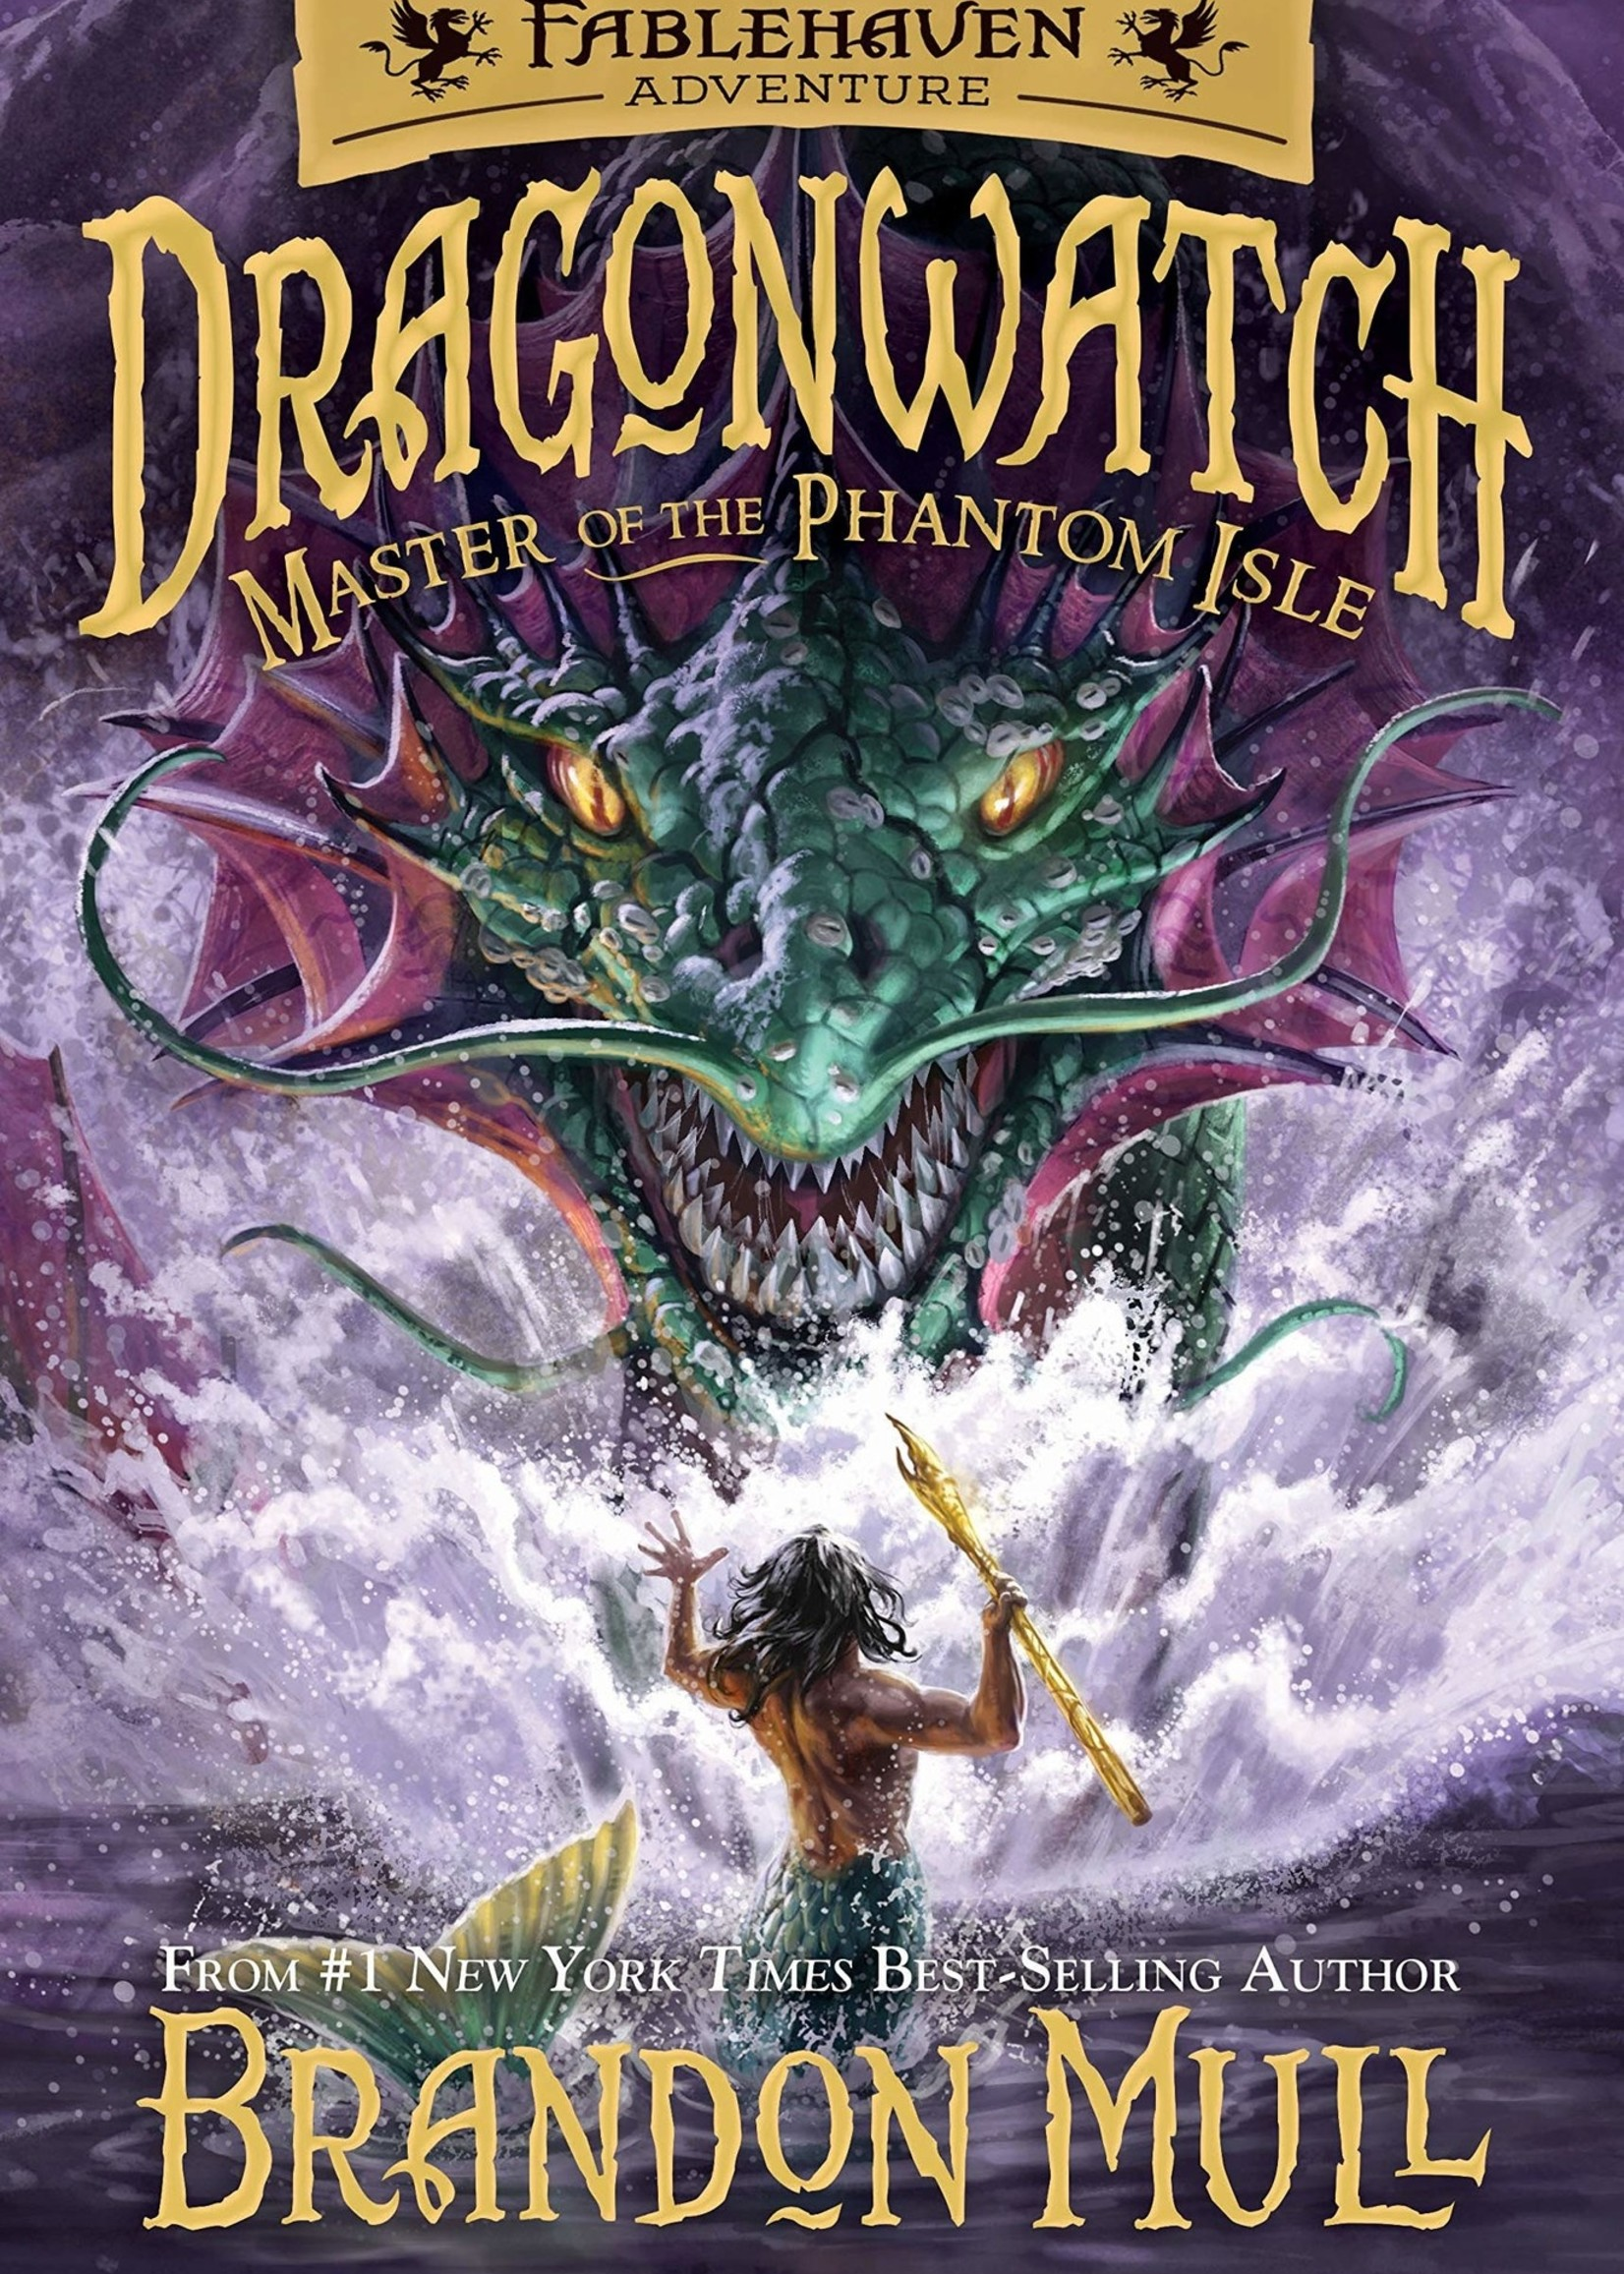 Dragonwatch #03, Master of the Phantom Isle: A Fablehaven Adventure - Paperback